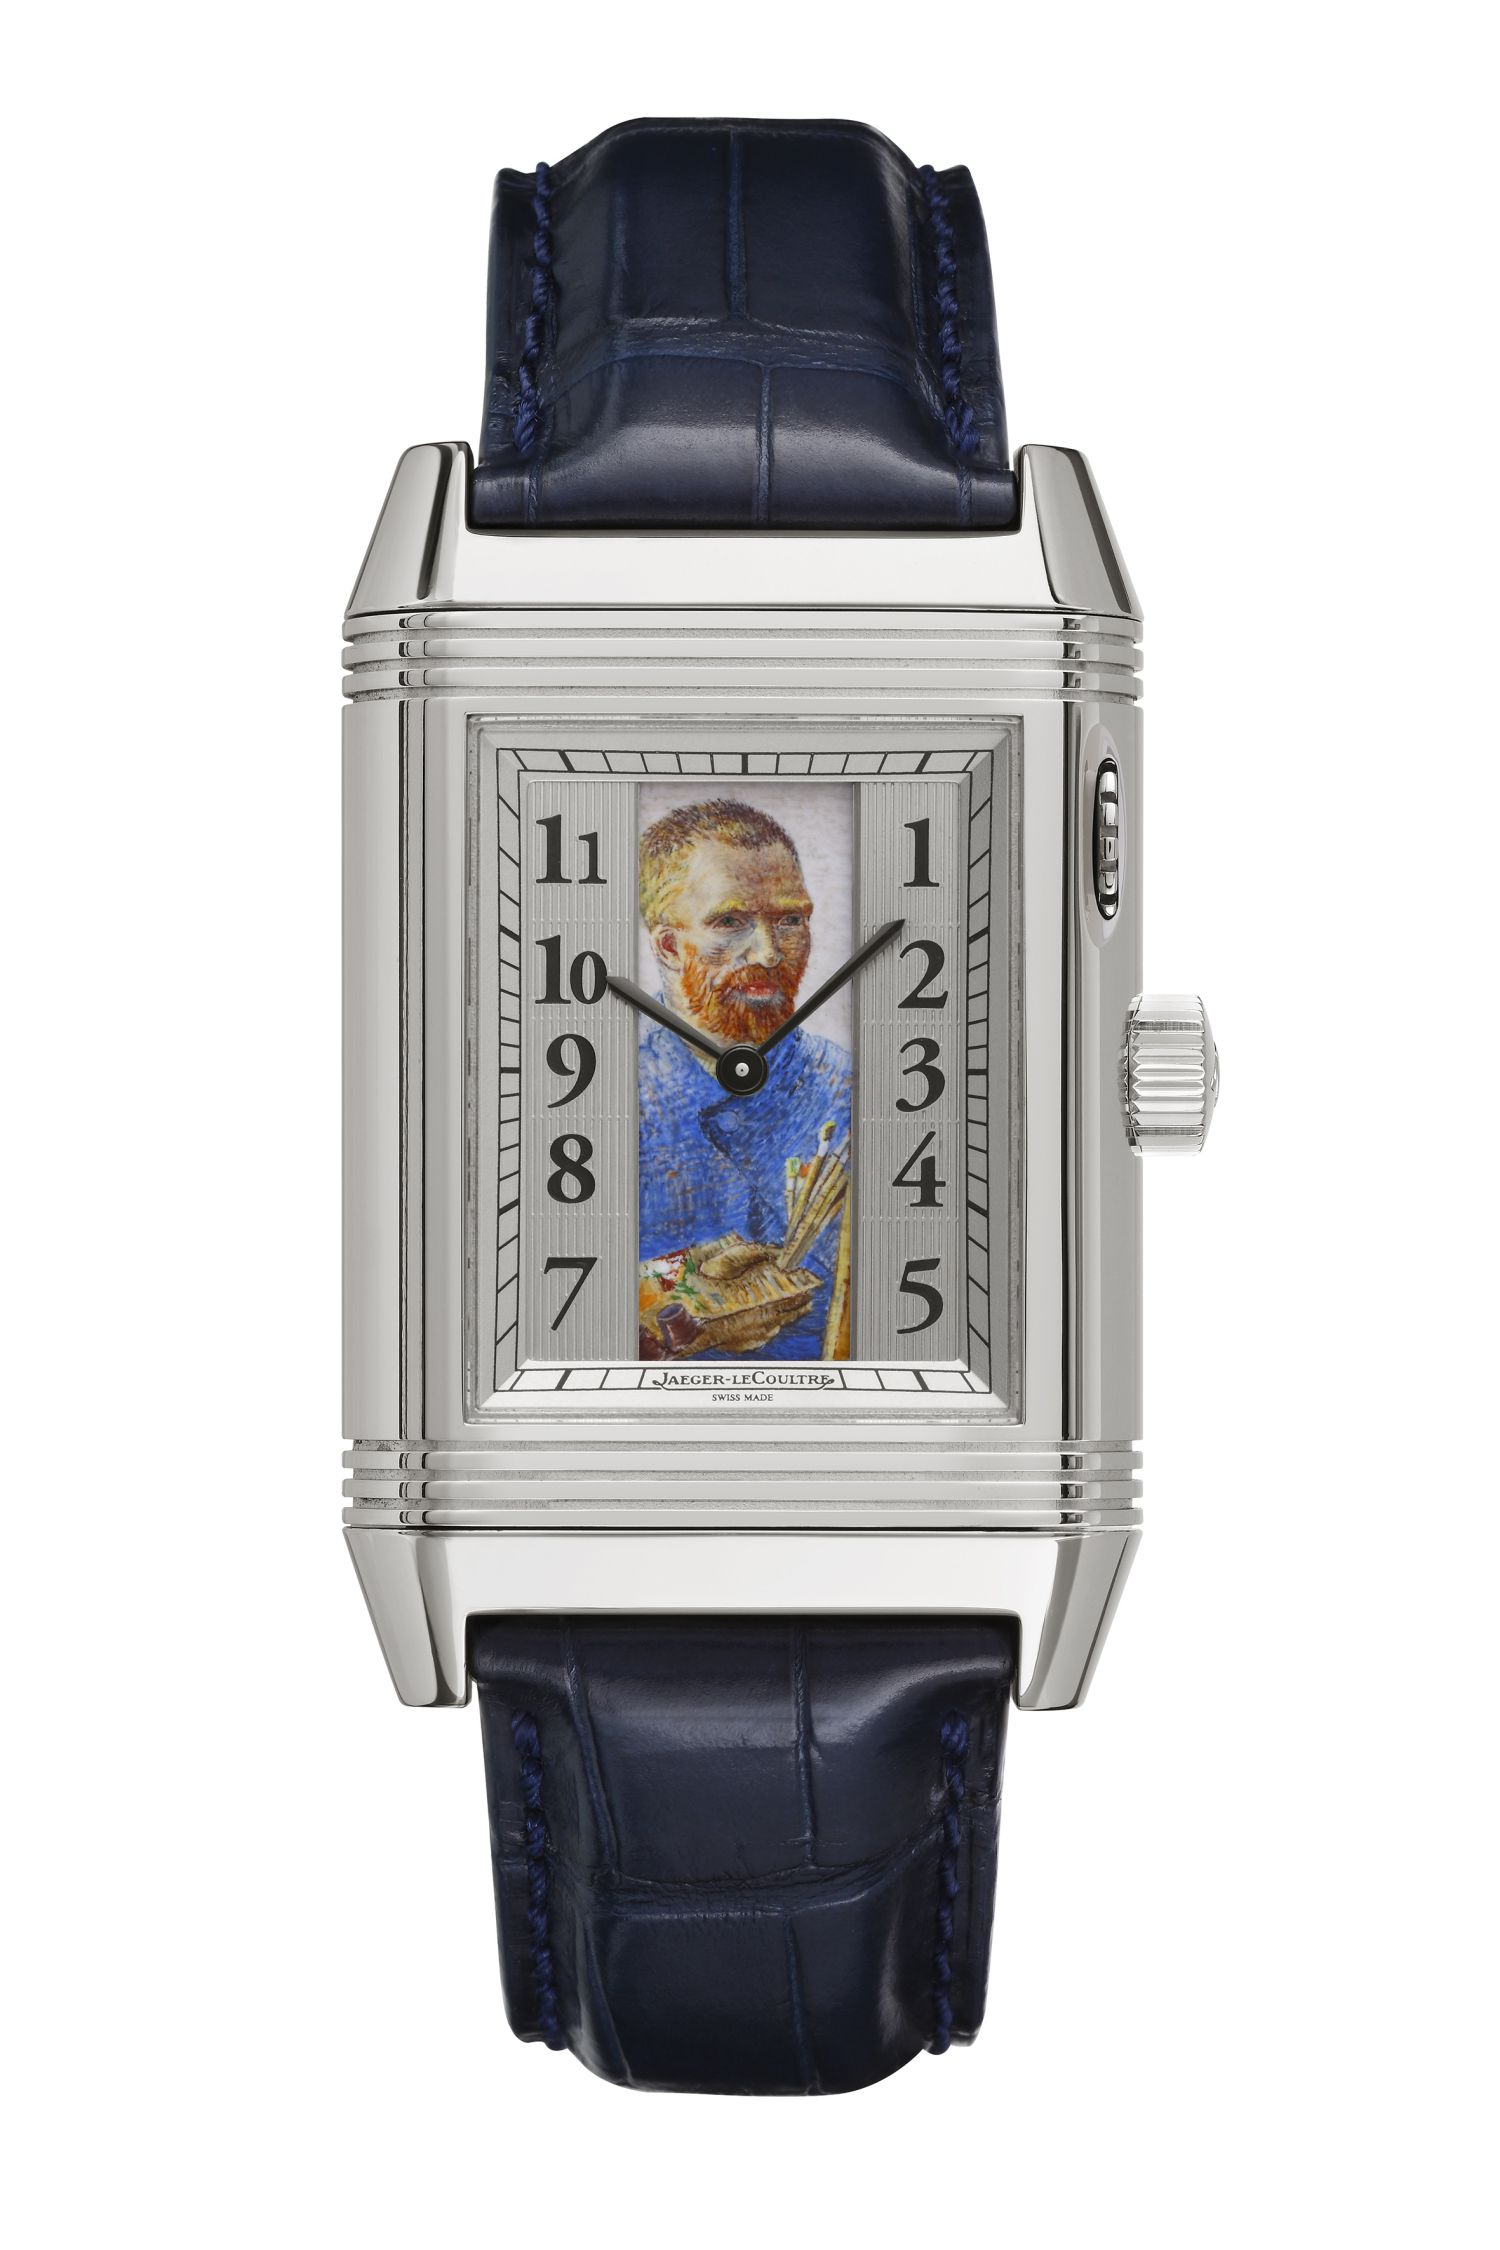 Jaeger-LeCoultre-Reverso-Tribute-to-Vincent-van-Gogh-3.jpg